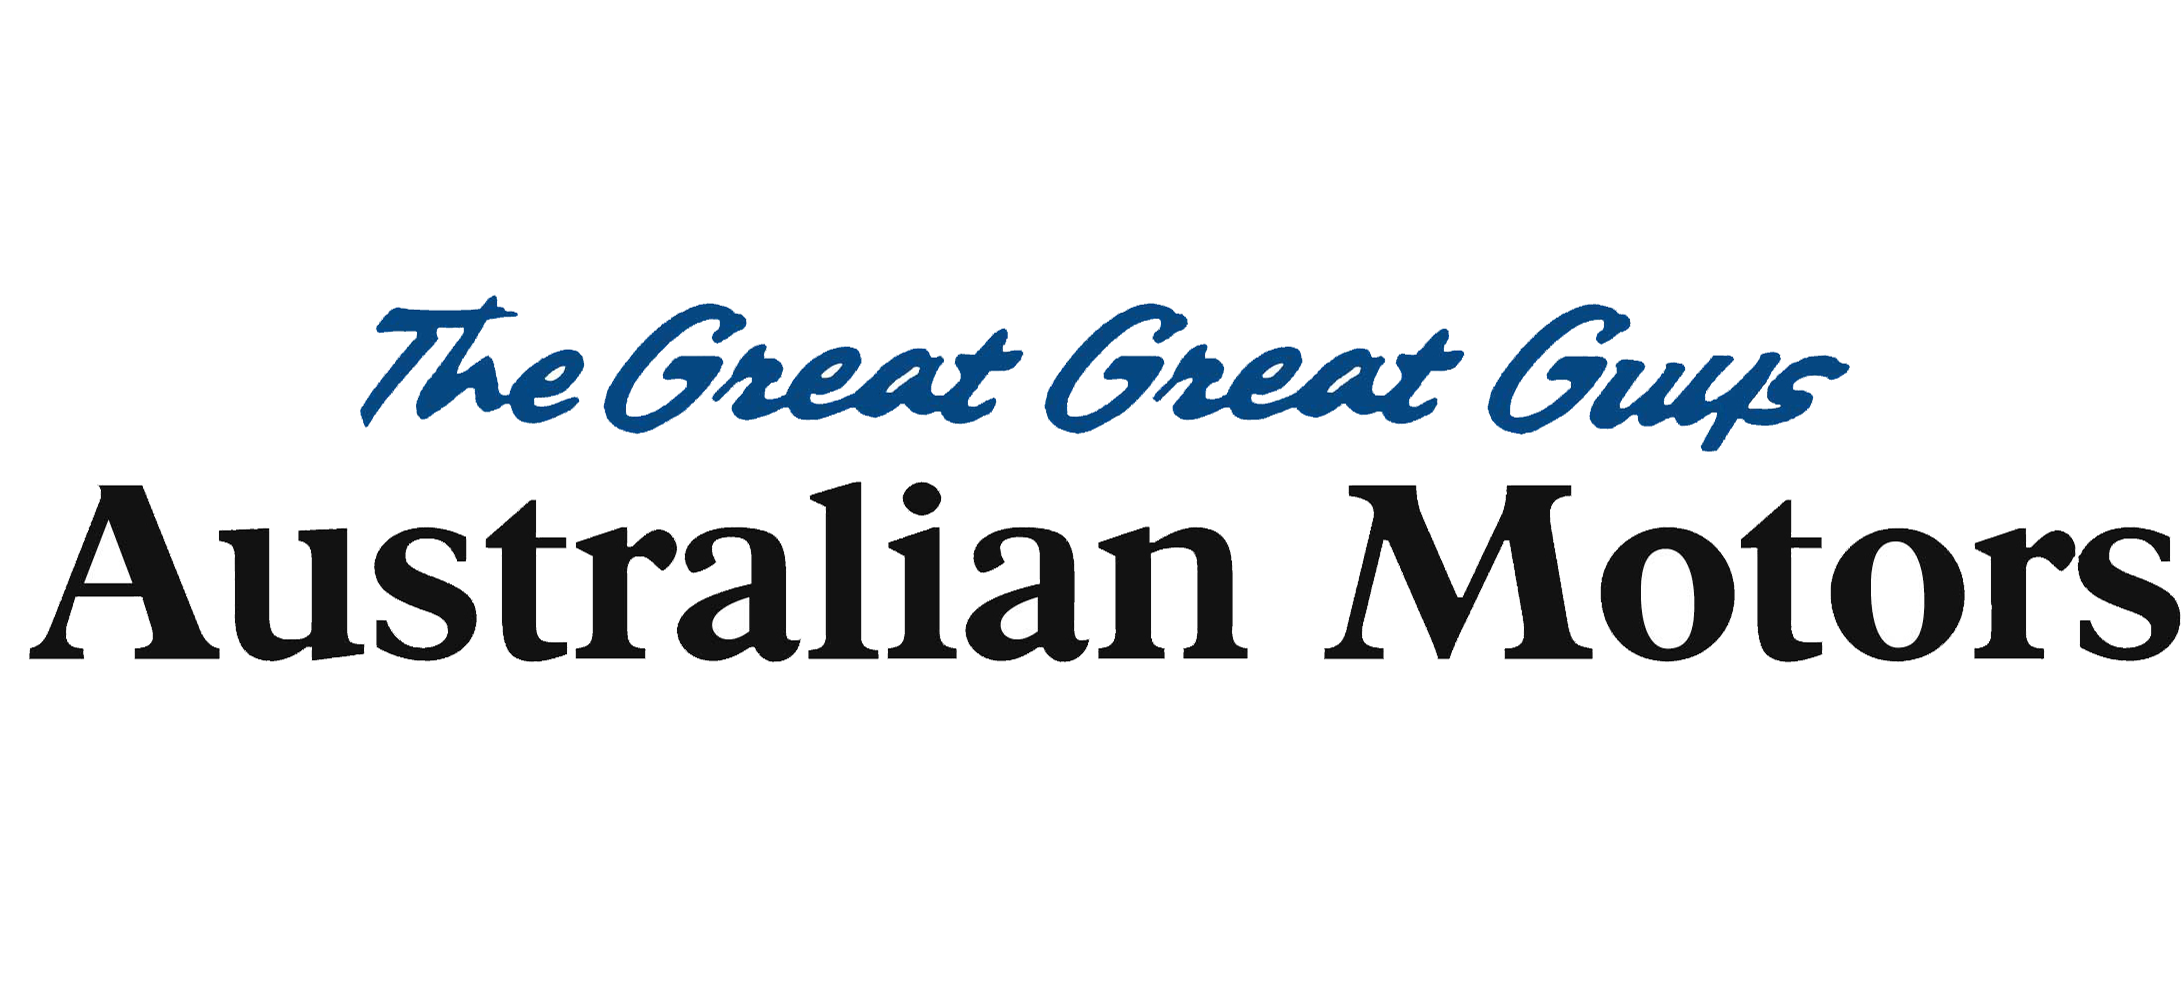 Great Australian Motors - The great great guys